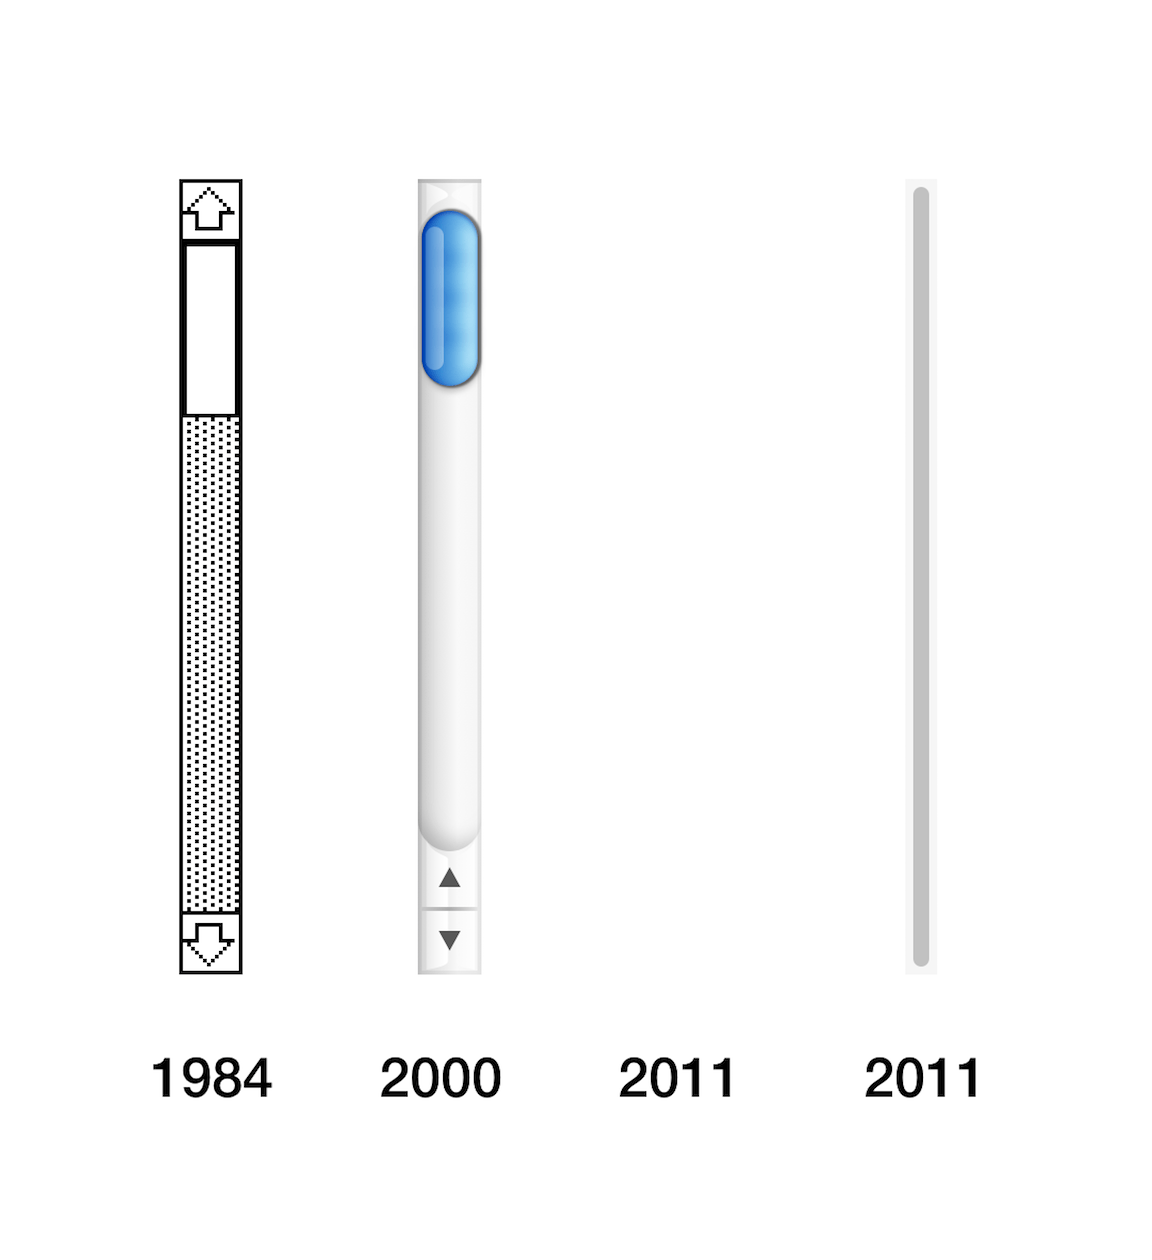 Design of Mac scrollbars over time